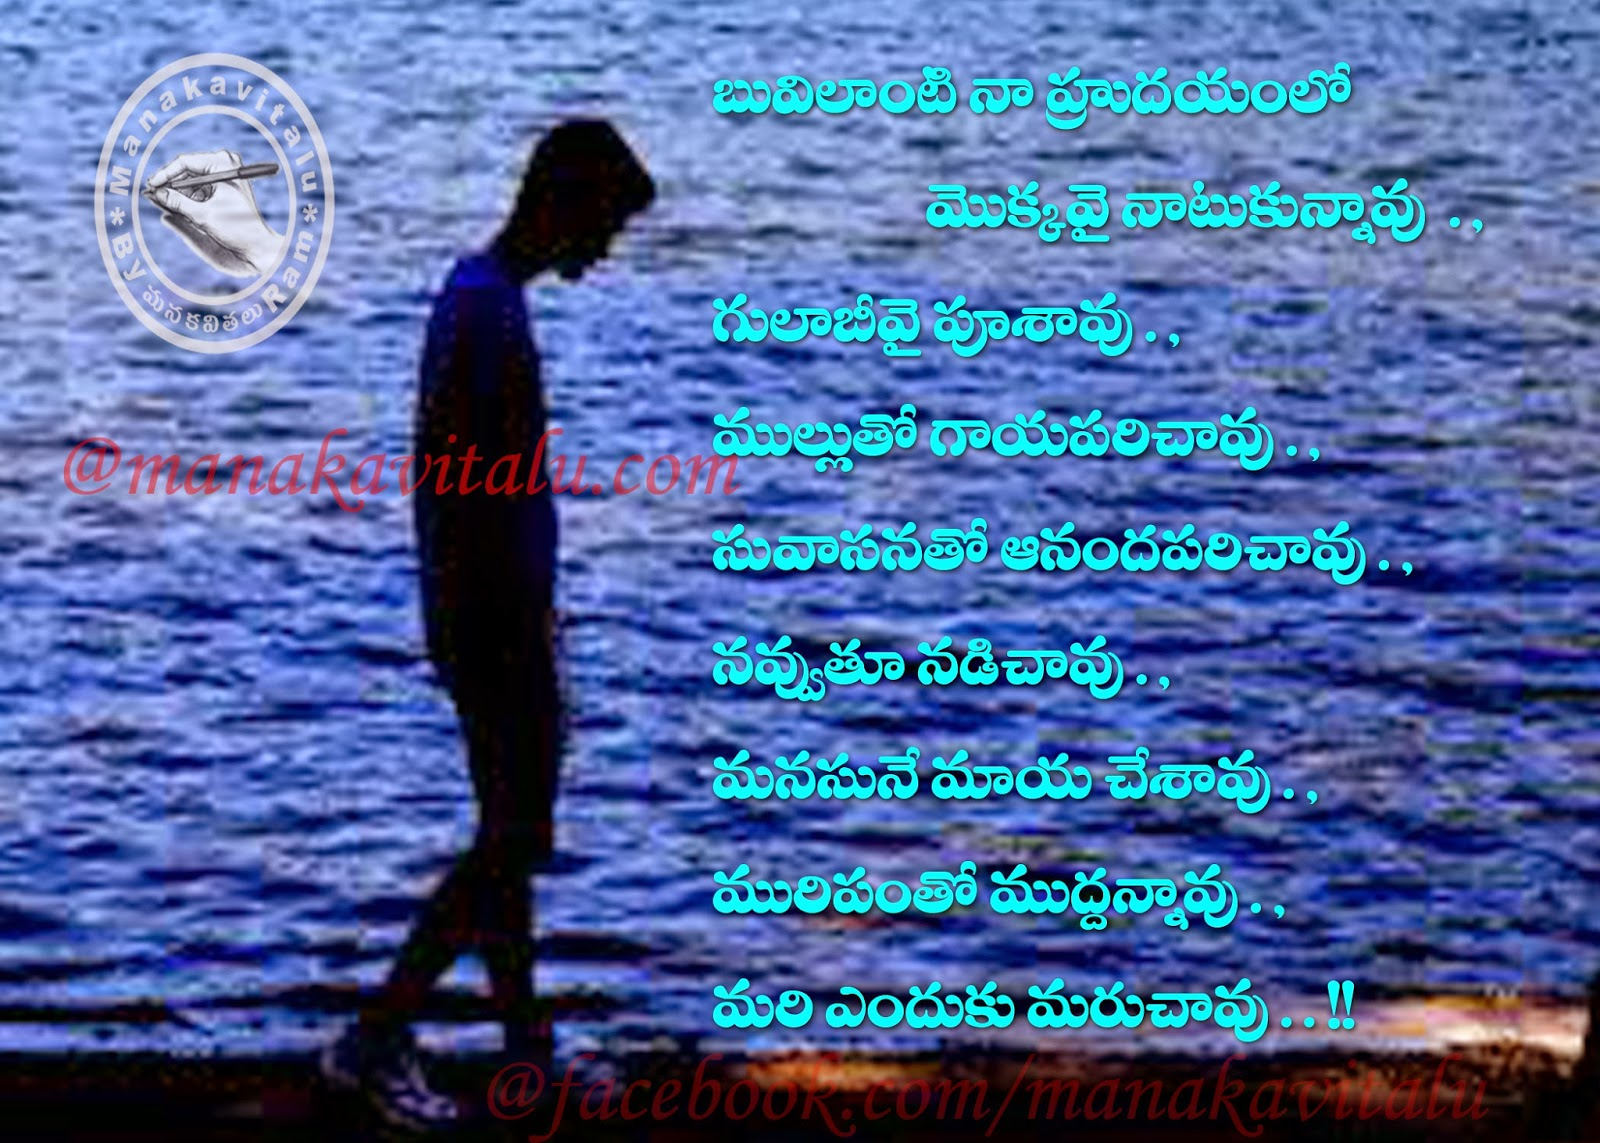 gundepai gulabi telugu love failure kavitalu on images